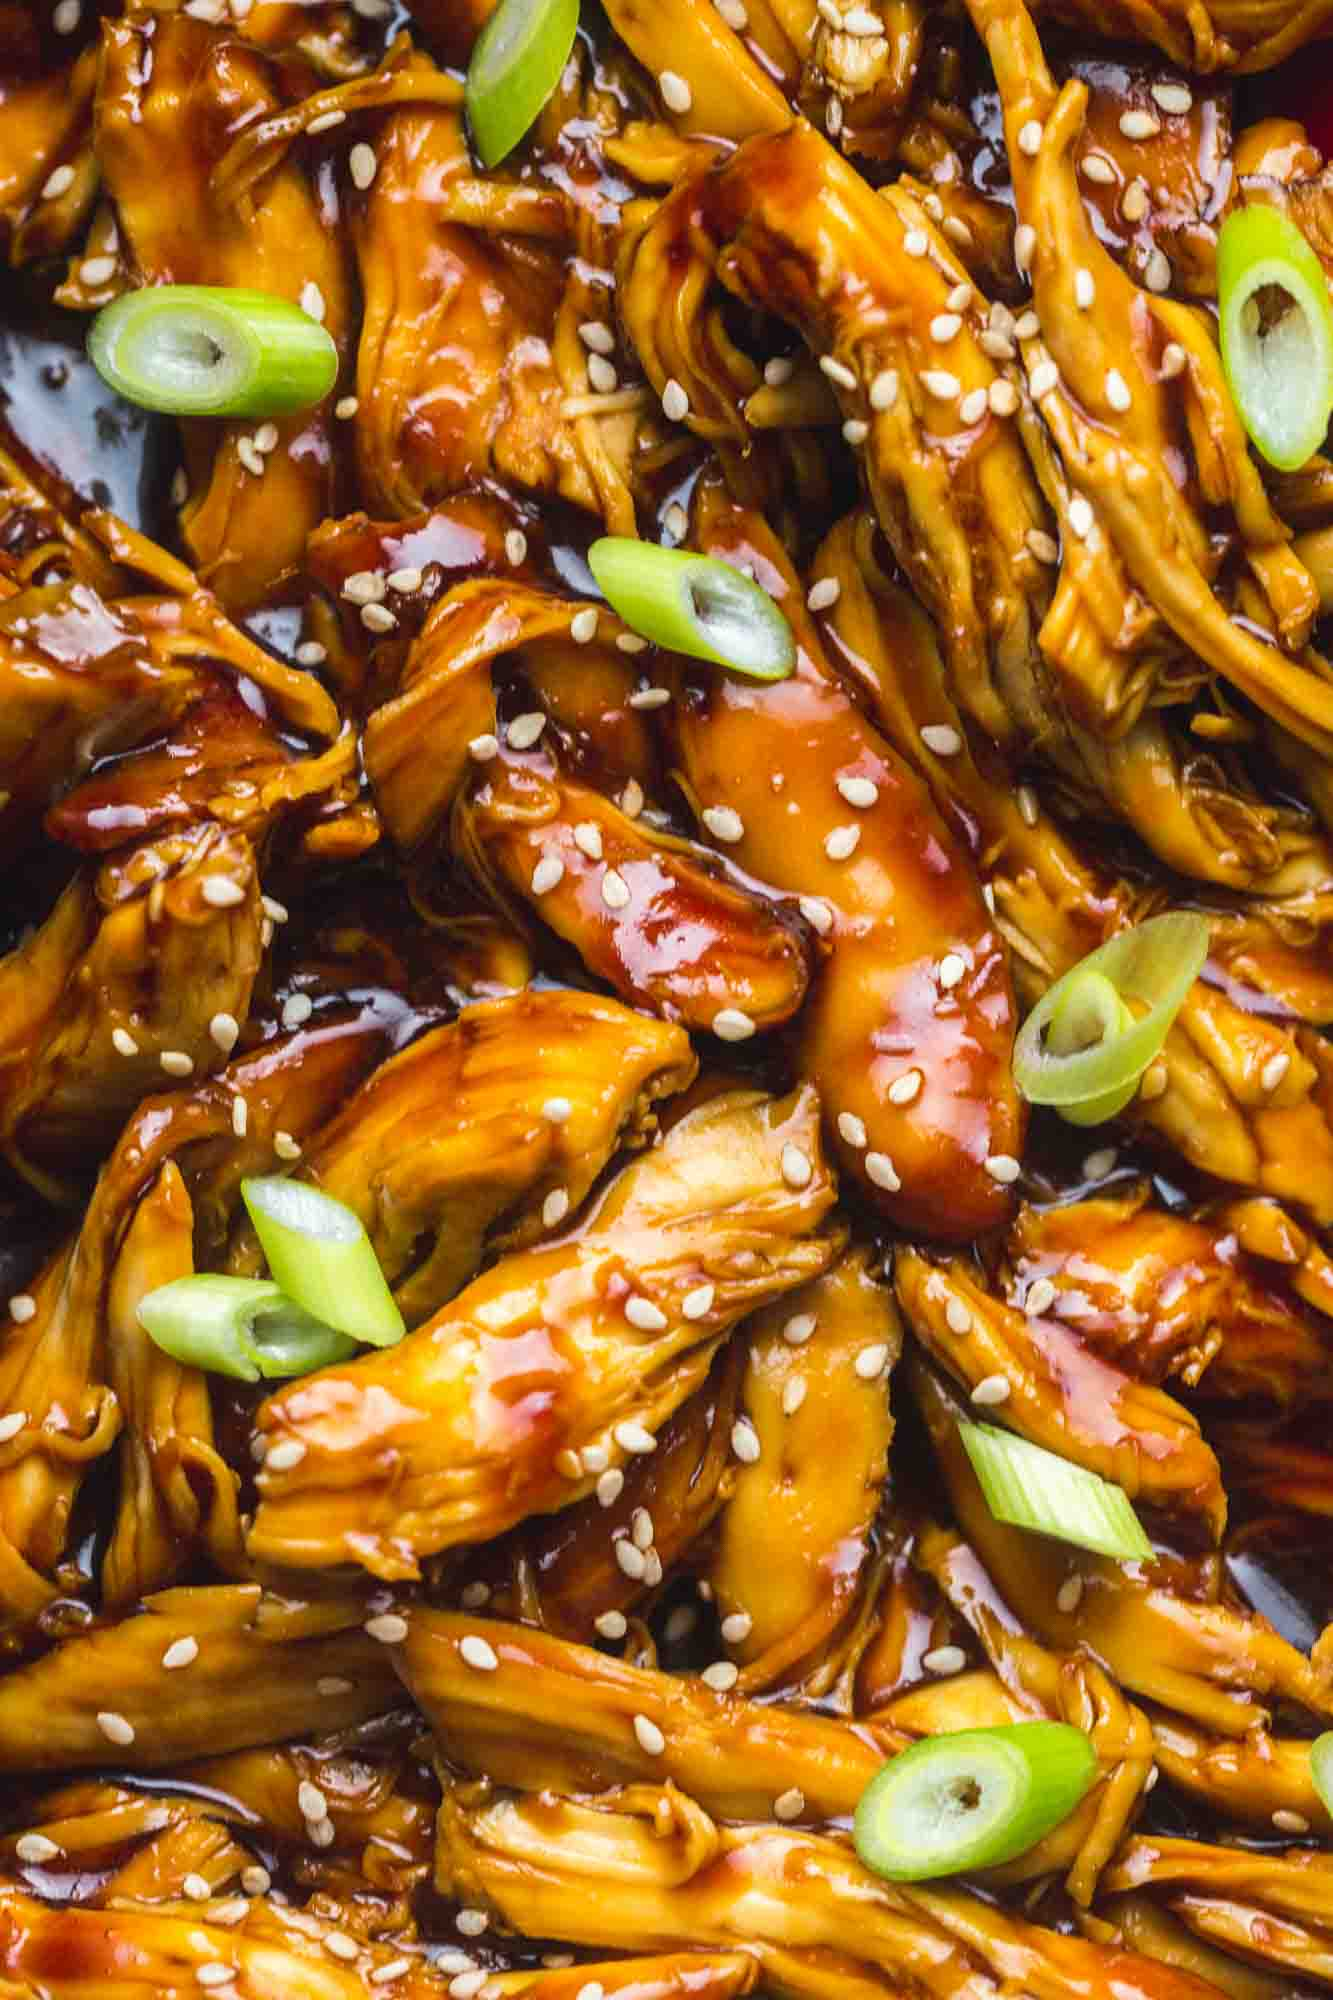 Close up of the teriyaki shredded chicken garnished with sesame seeds and sliced green onion